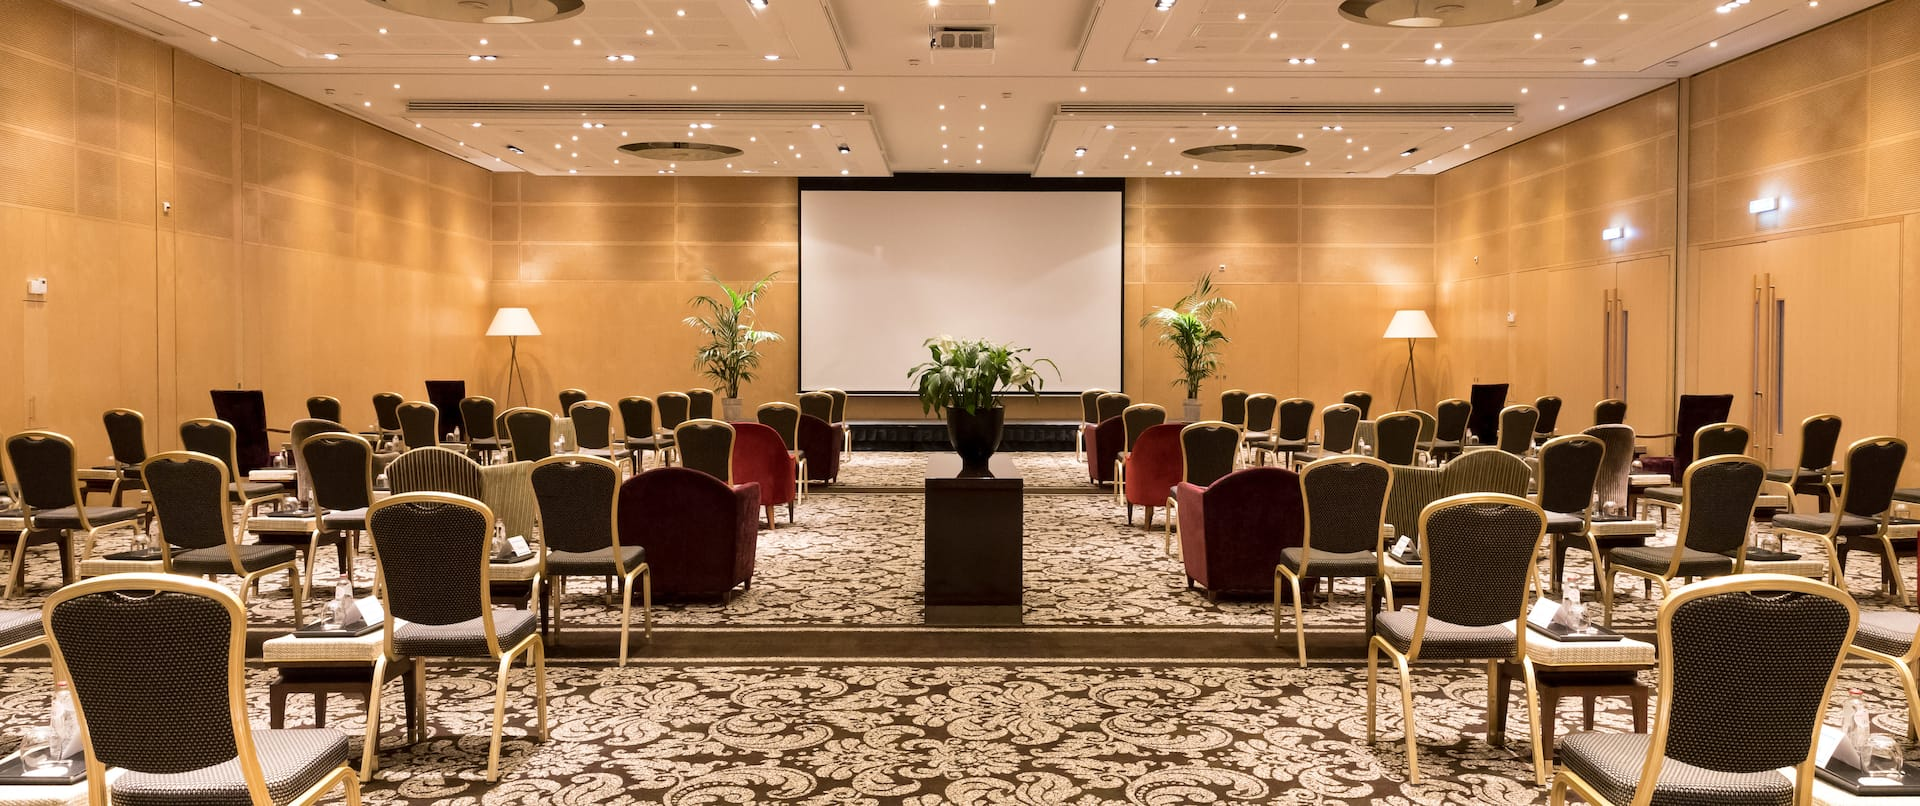 Meeting Event - Ballroom